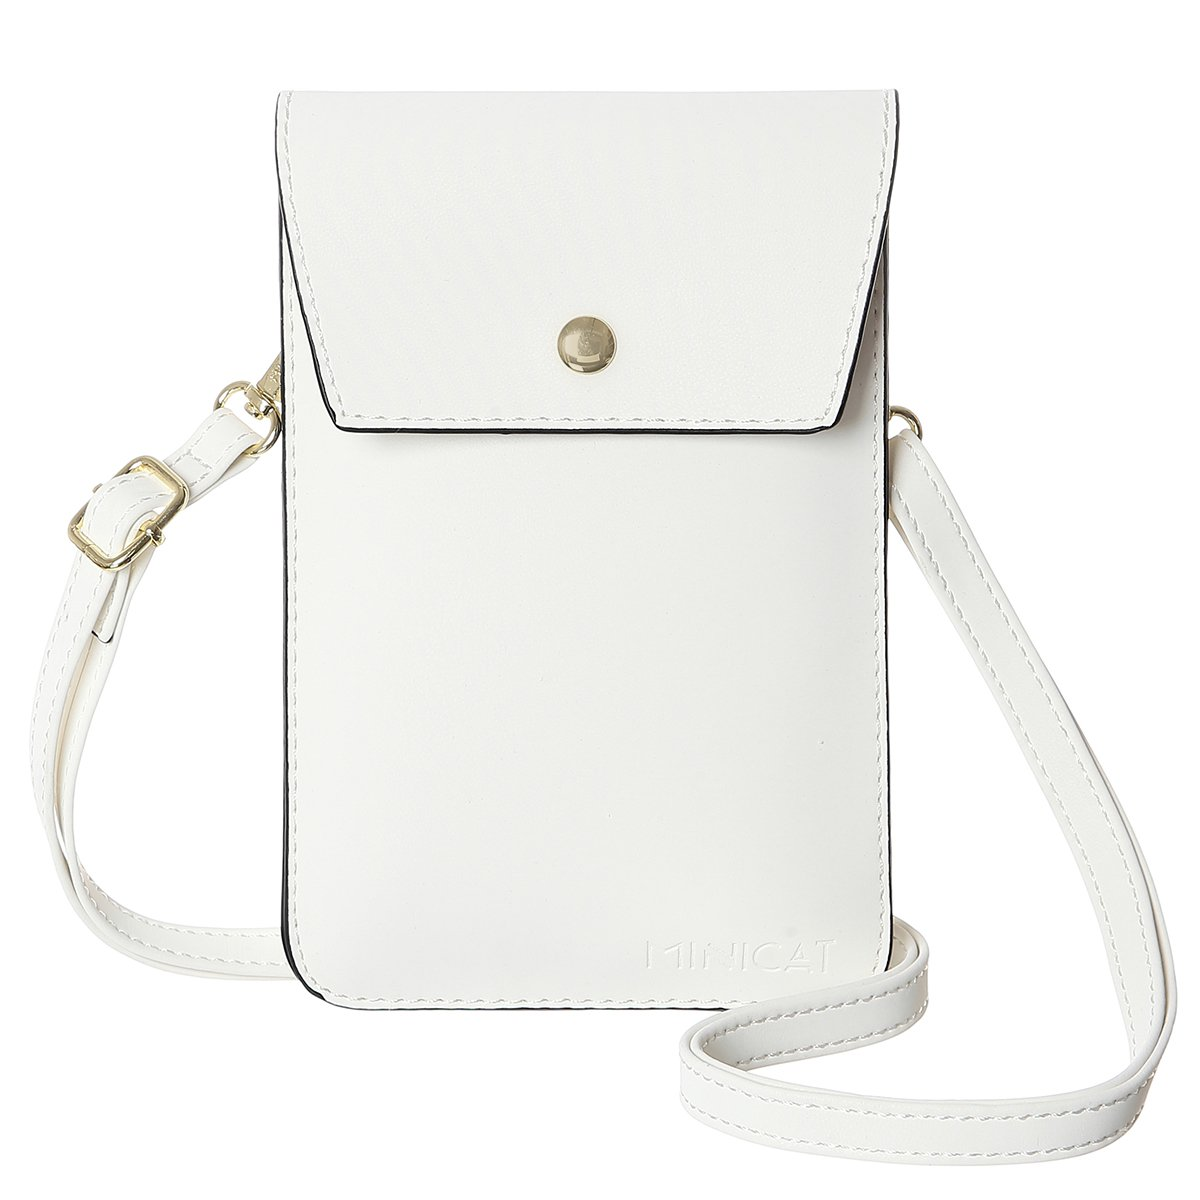 MINICAT Back Slot Series Small Crossbody Cell Phone Purse Wallet Smartphone Bags For Women (White)